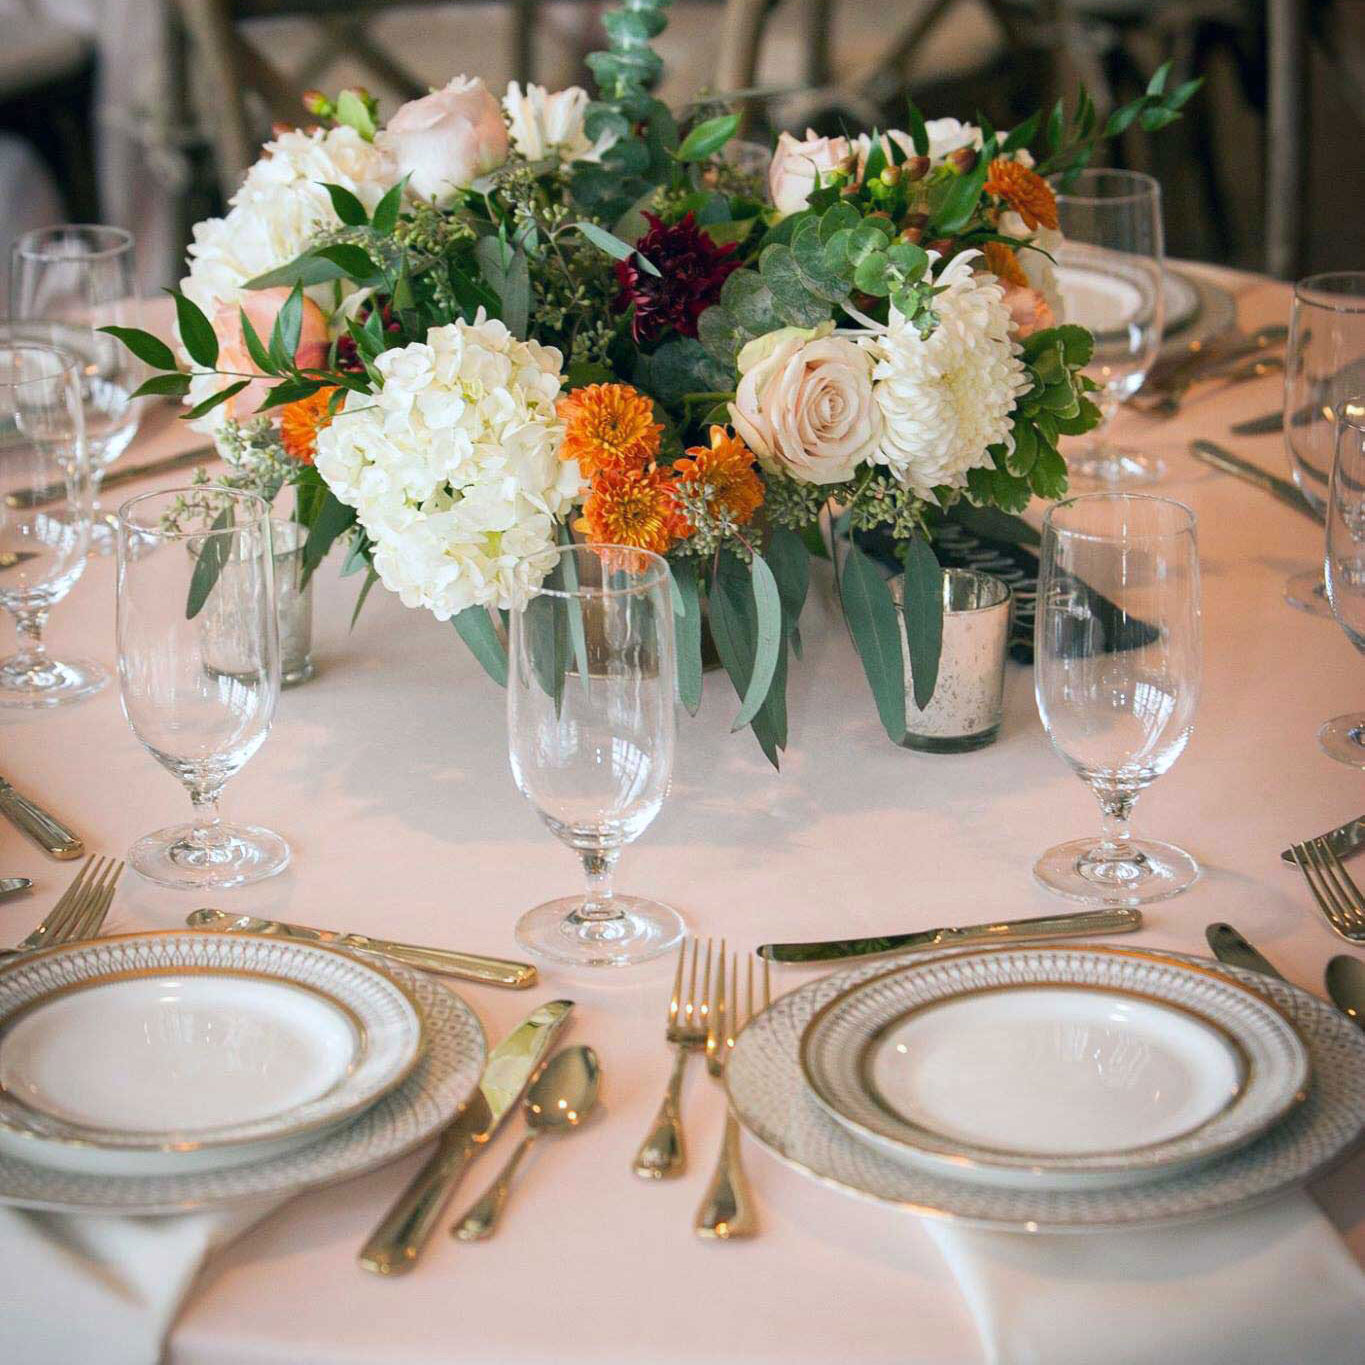 Tableware and florals at the Scott and Robin Shay wedding.